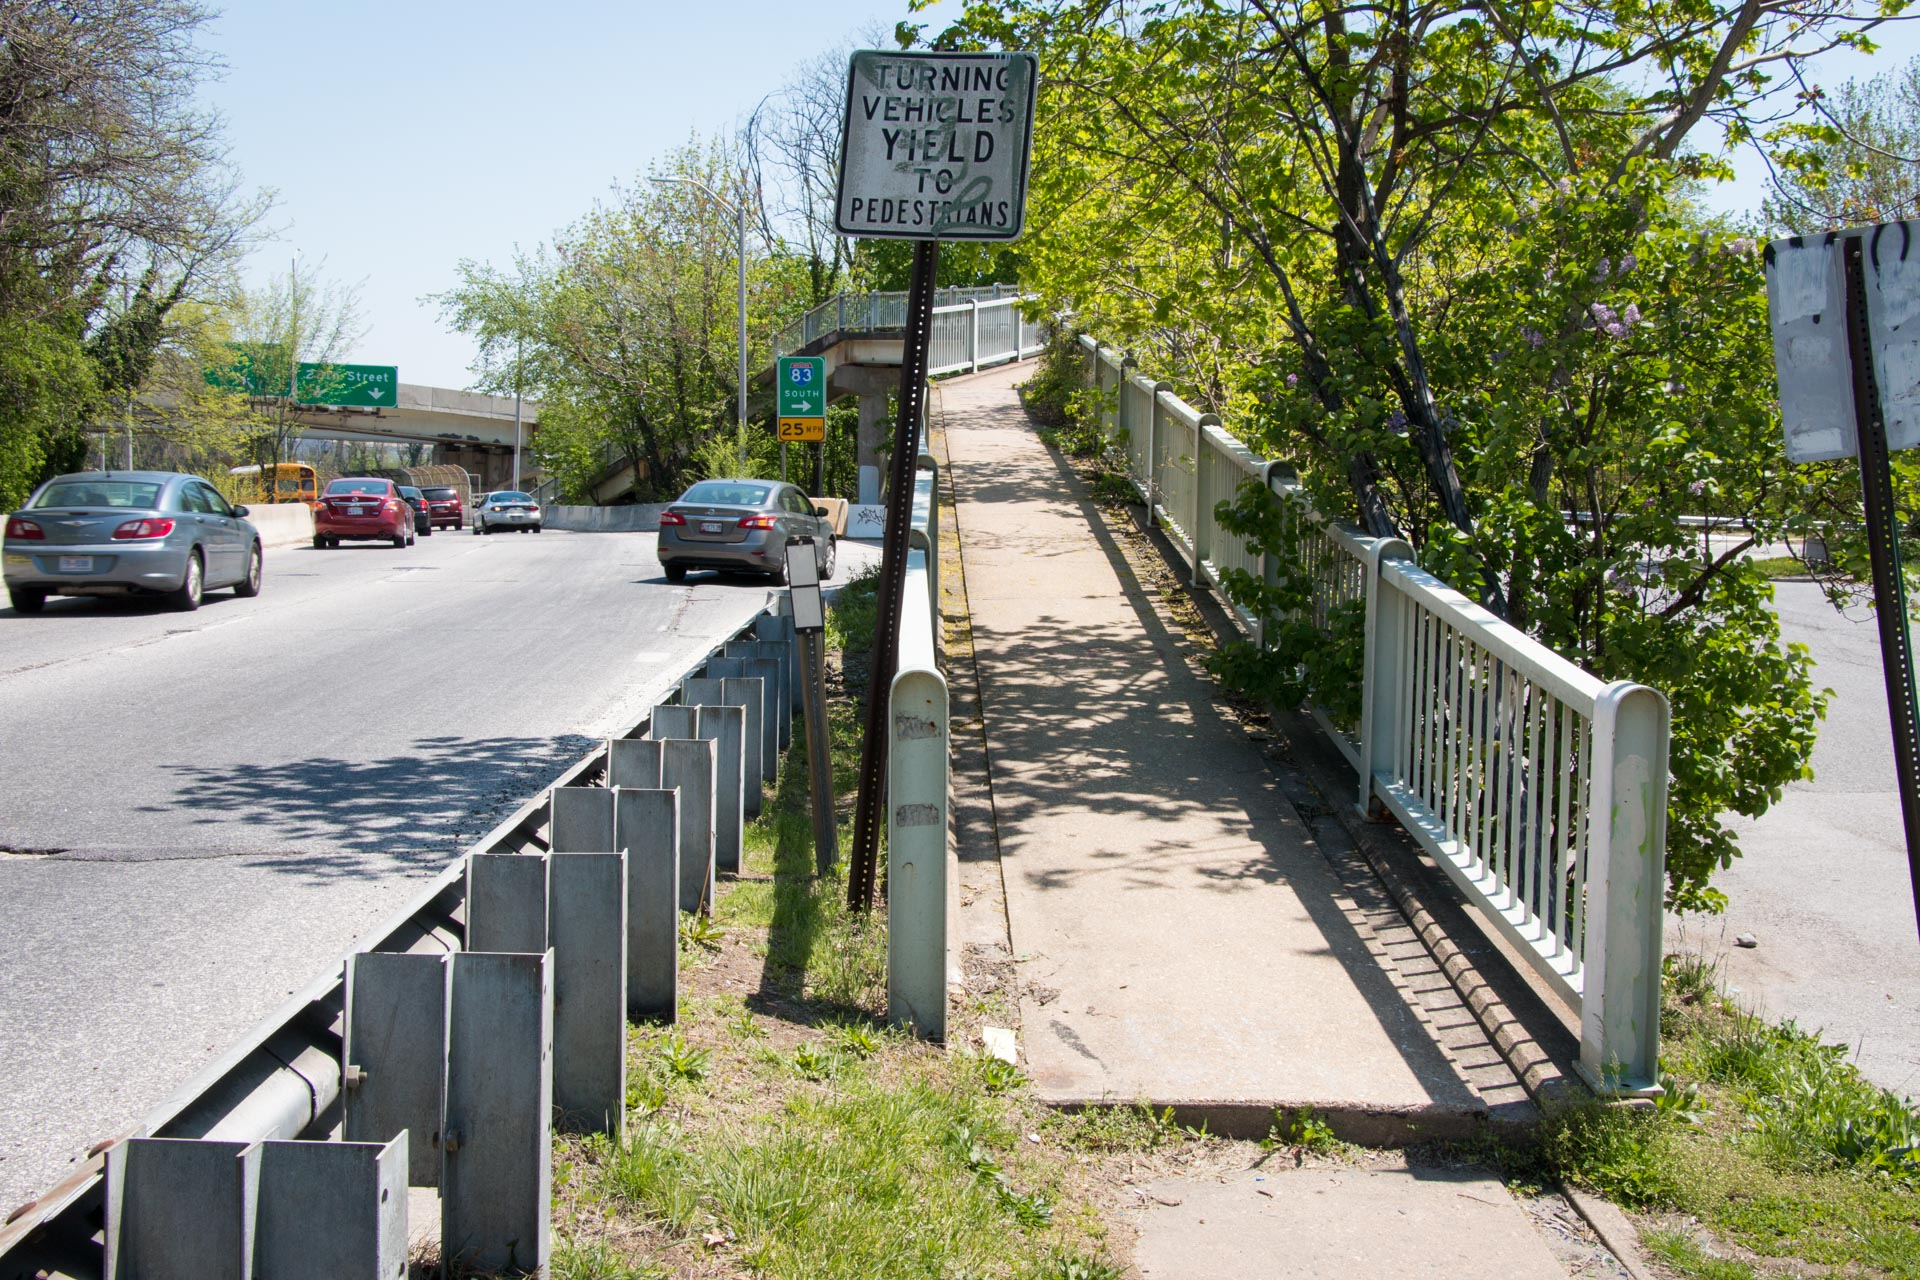 180501 Druid Hill Park pedestrian access conditions 03 non-accessible pedestrian bridge ramp